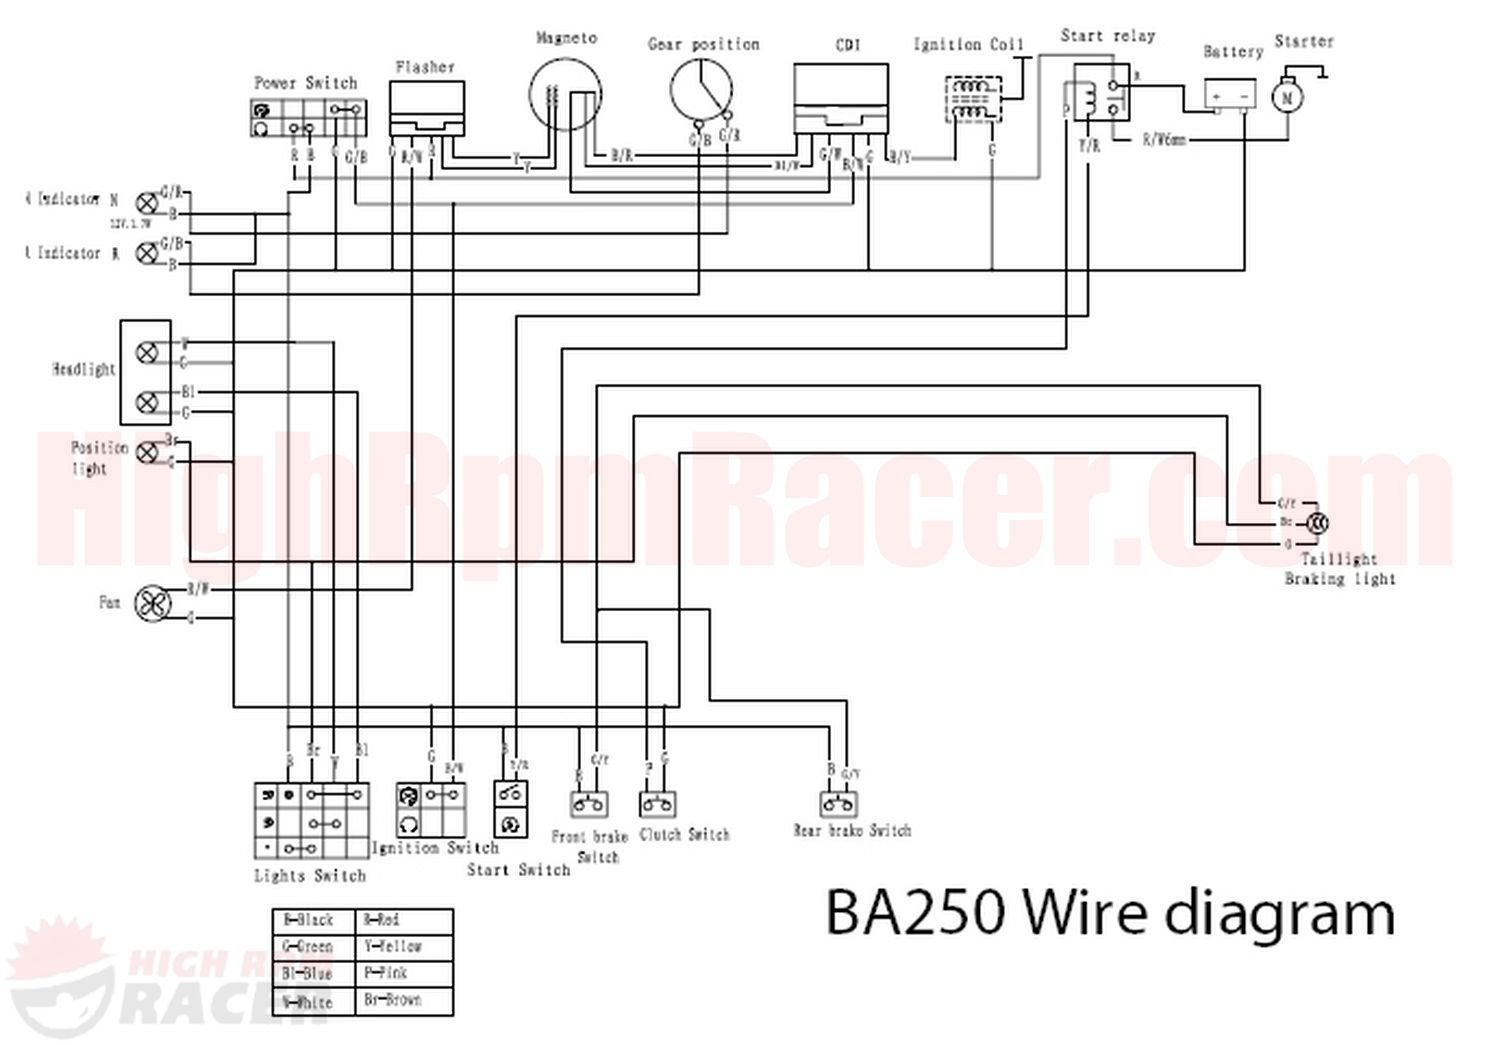 1984 suzuki 50cc atv wiring diagram carbonvote mudit blog \u2022 Suzuki ATV 4 Wheeler Wiring Diagrams 1984 suzuki 50cc atv wiring diagram wiring diagram rh 18 geschiedenisanders nl